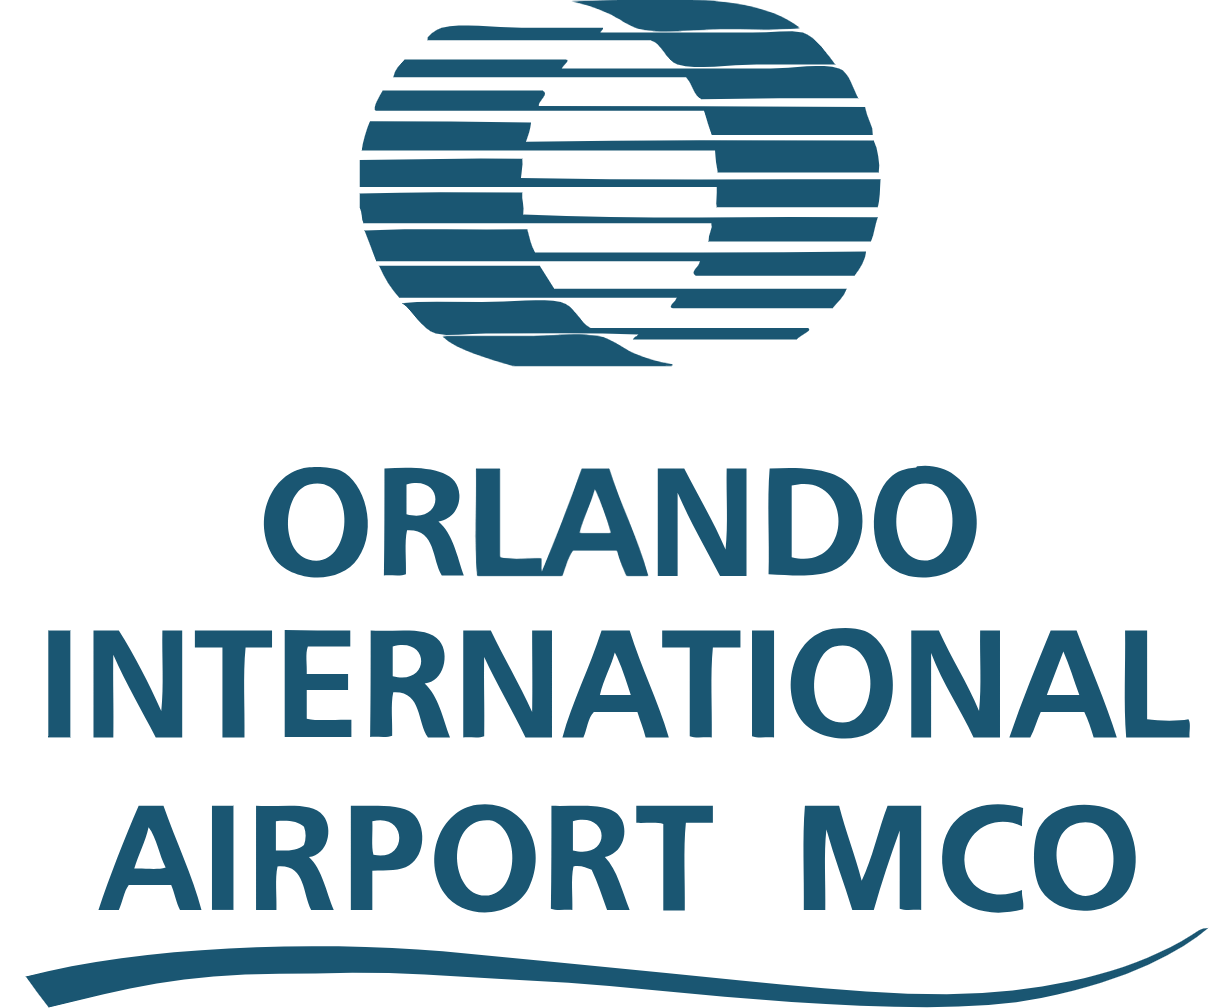 Orlando International Airport MCO logo